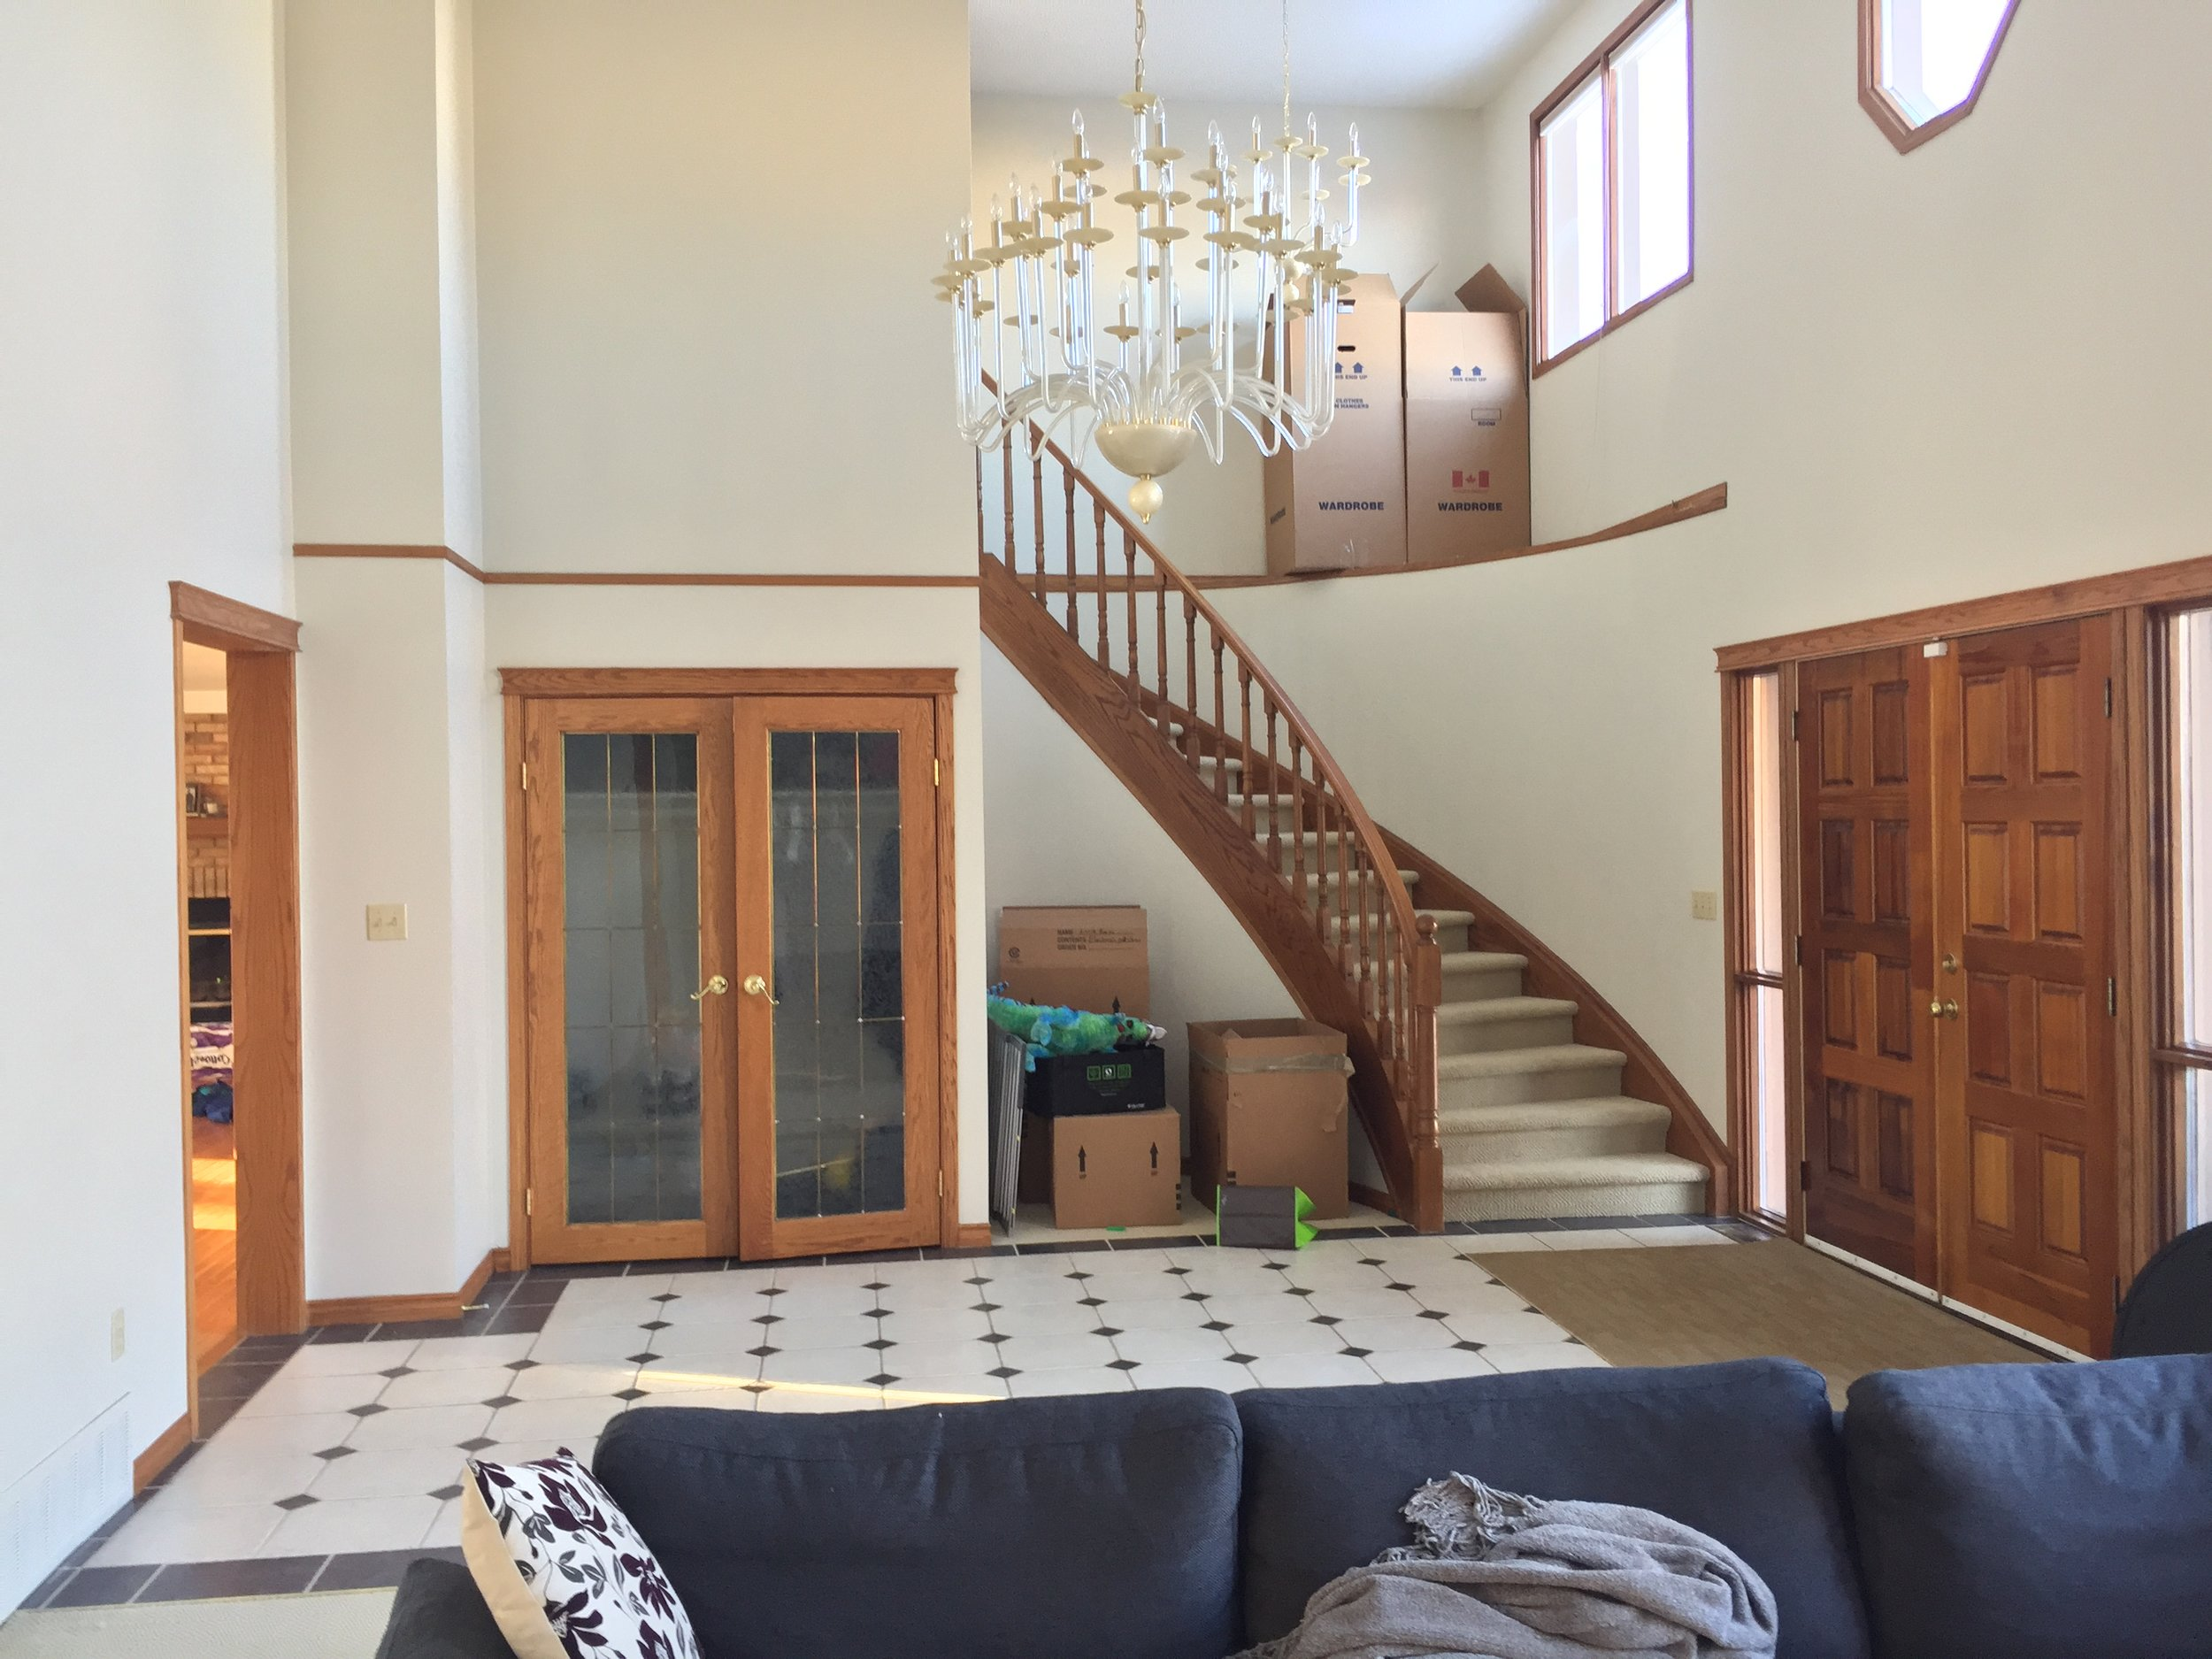 Entry way renovation ideas